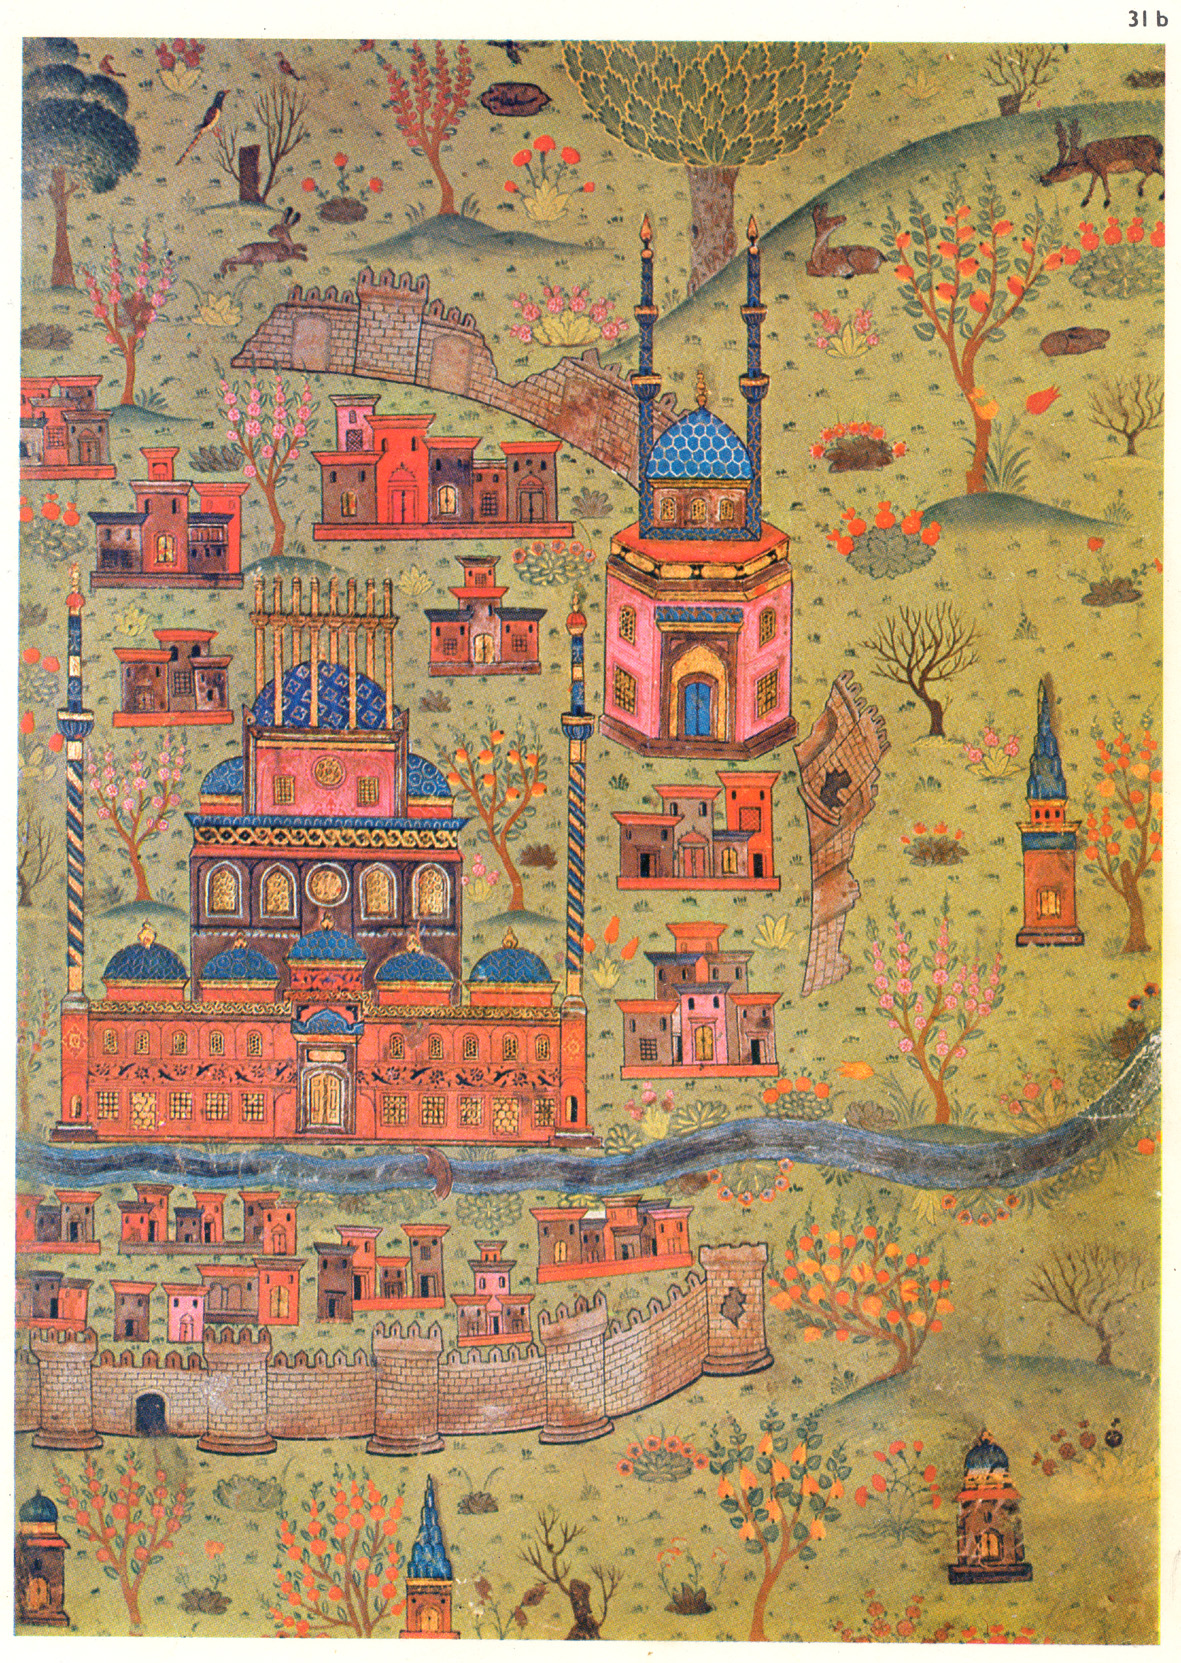 16th century map of Soltaniyeh, Zanjan, Iran. Several colorful buildings sit amongst hills, walls, and a river. Interspered are animals and trees with colorful birds.